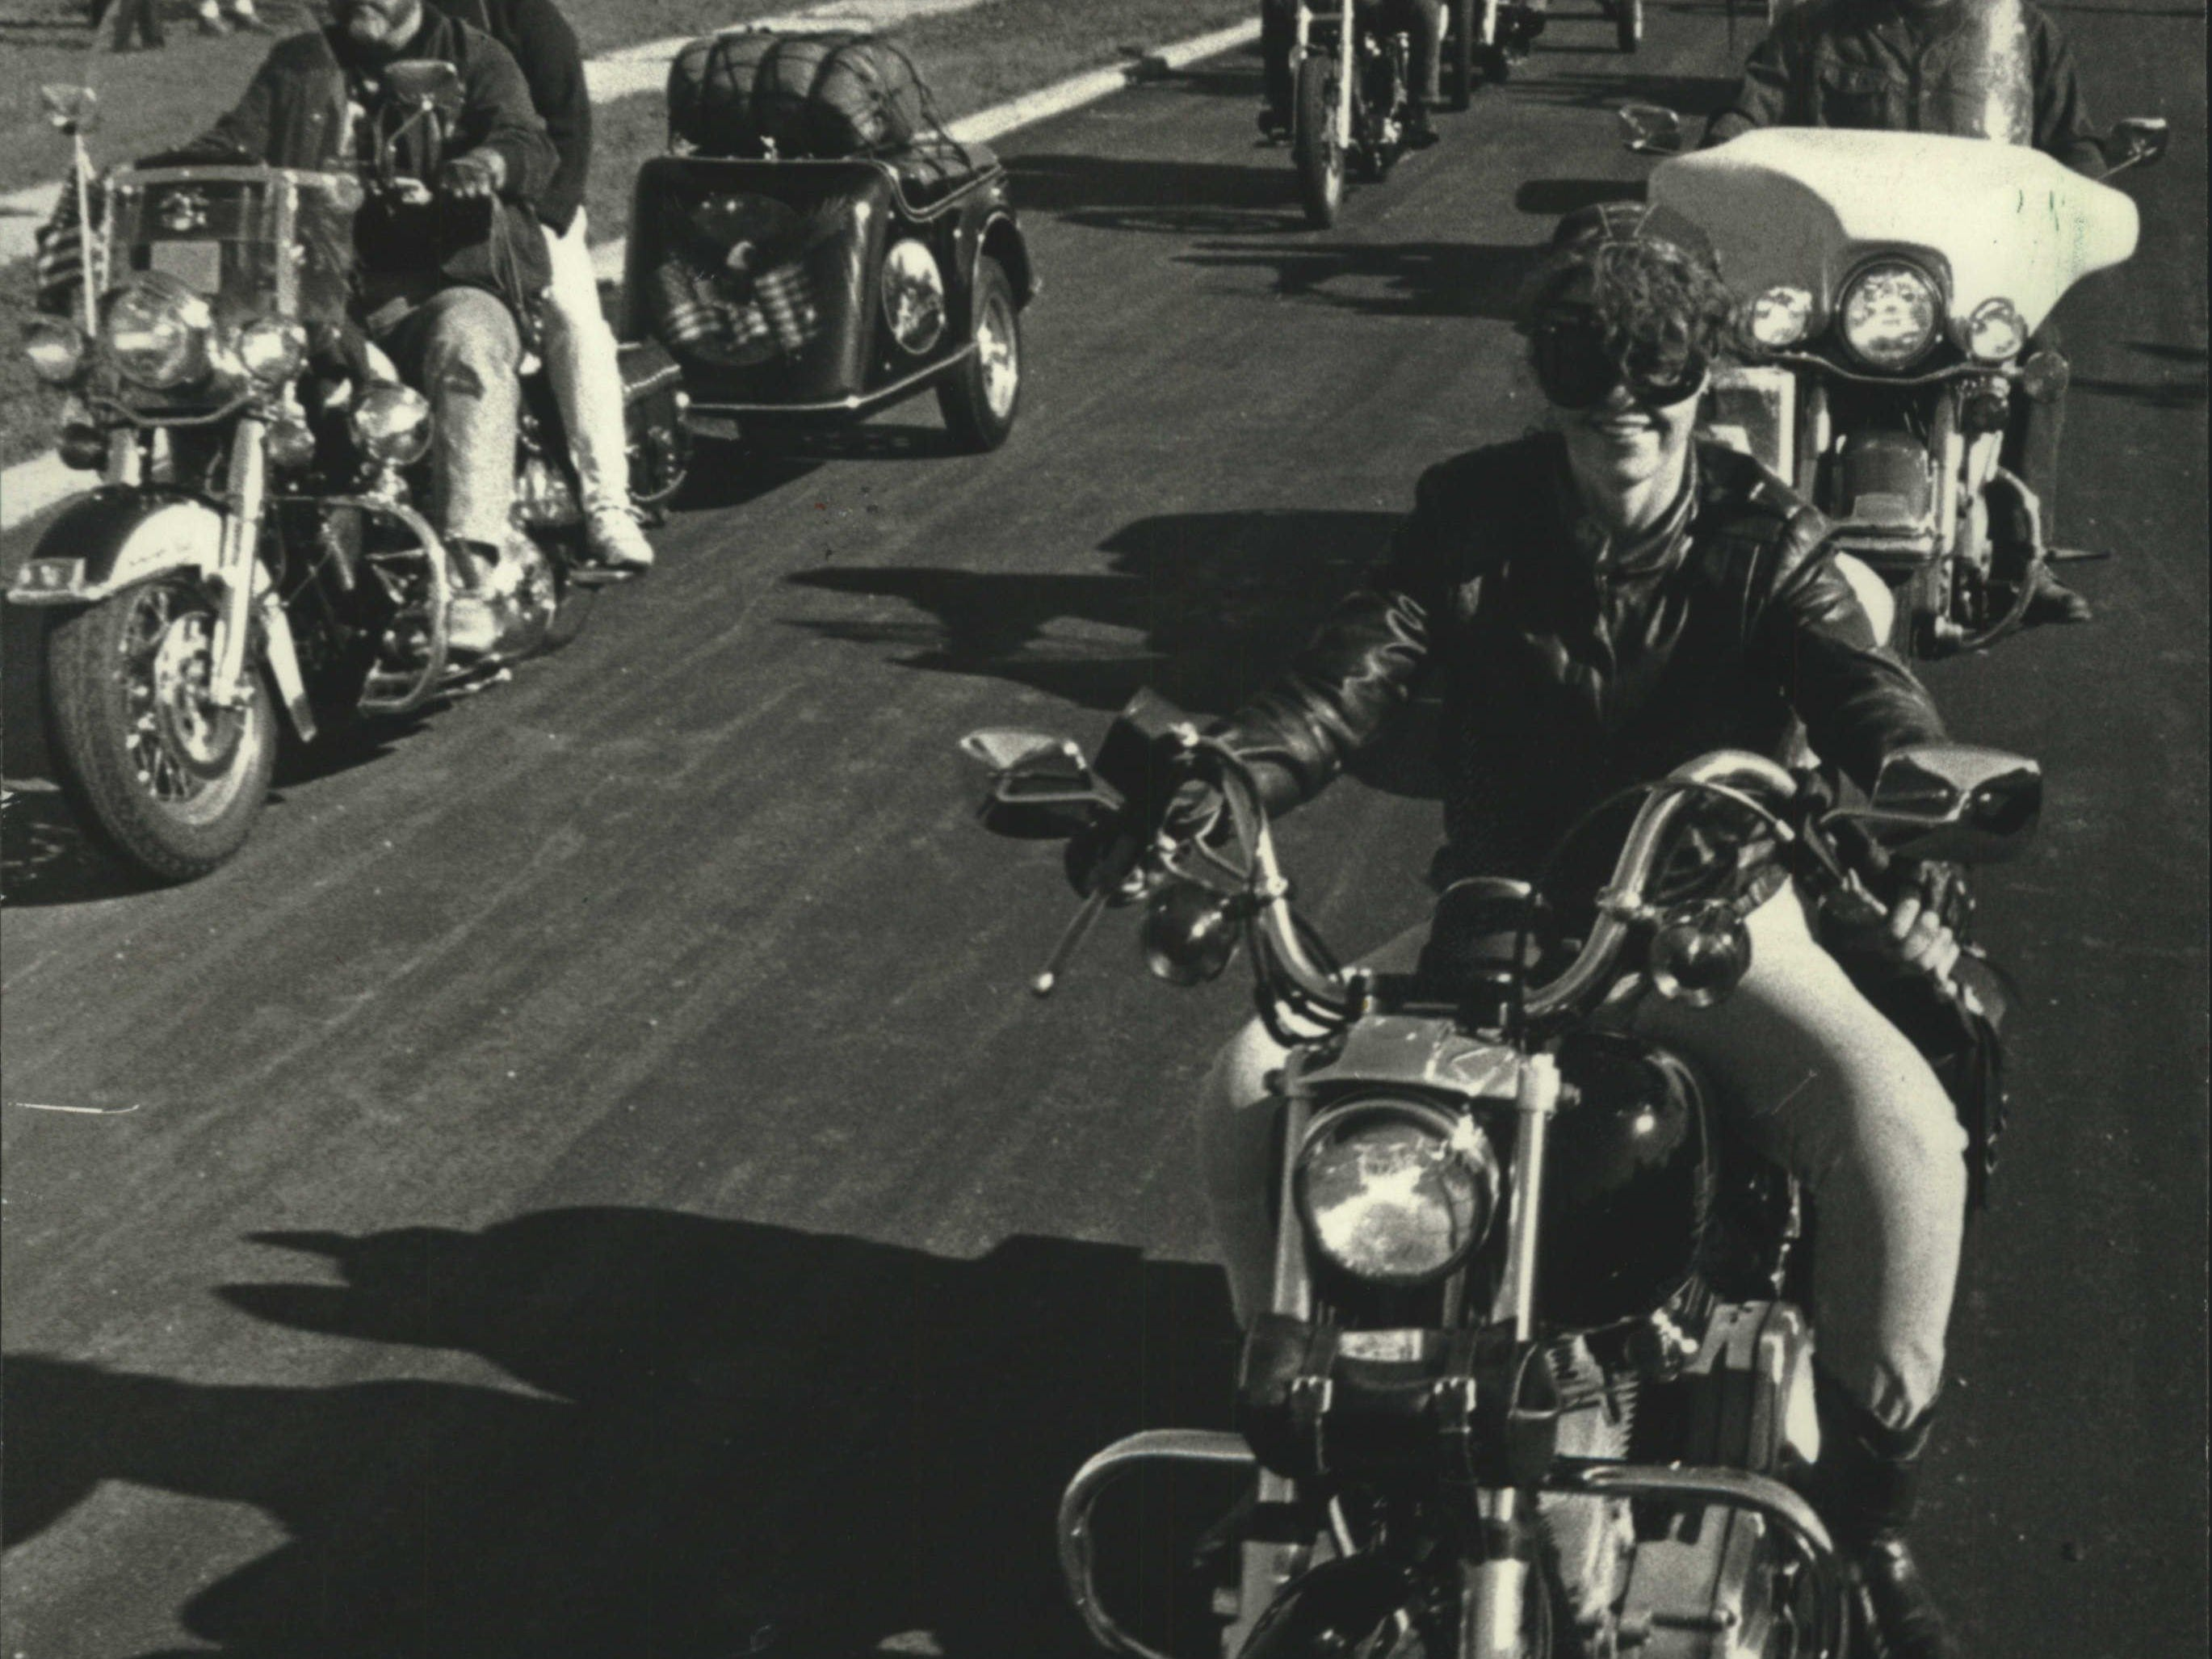 1990: Hundreds of Harley motorcycle riders, including top company officials, head off from the Harley-Davidson Transmission Plant, 11700 W. Capitol Drive, for a 900-mile ride to Sturgis, S.D., for the 50th Anniversary Motor Classic and National Harley Owners Group Rally.